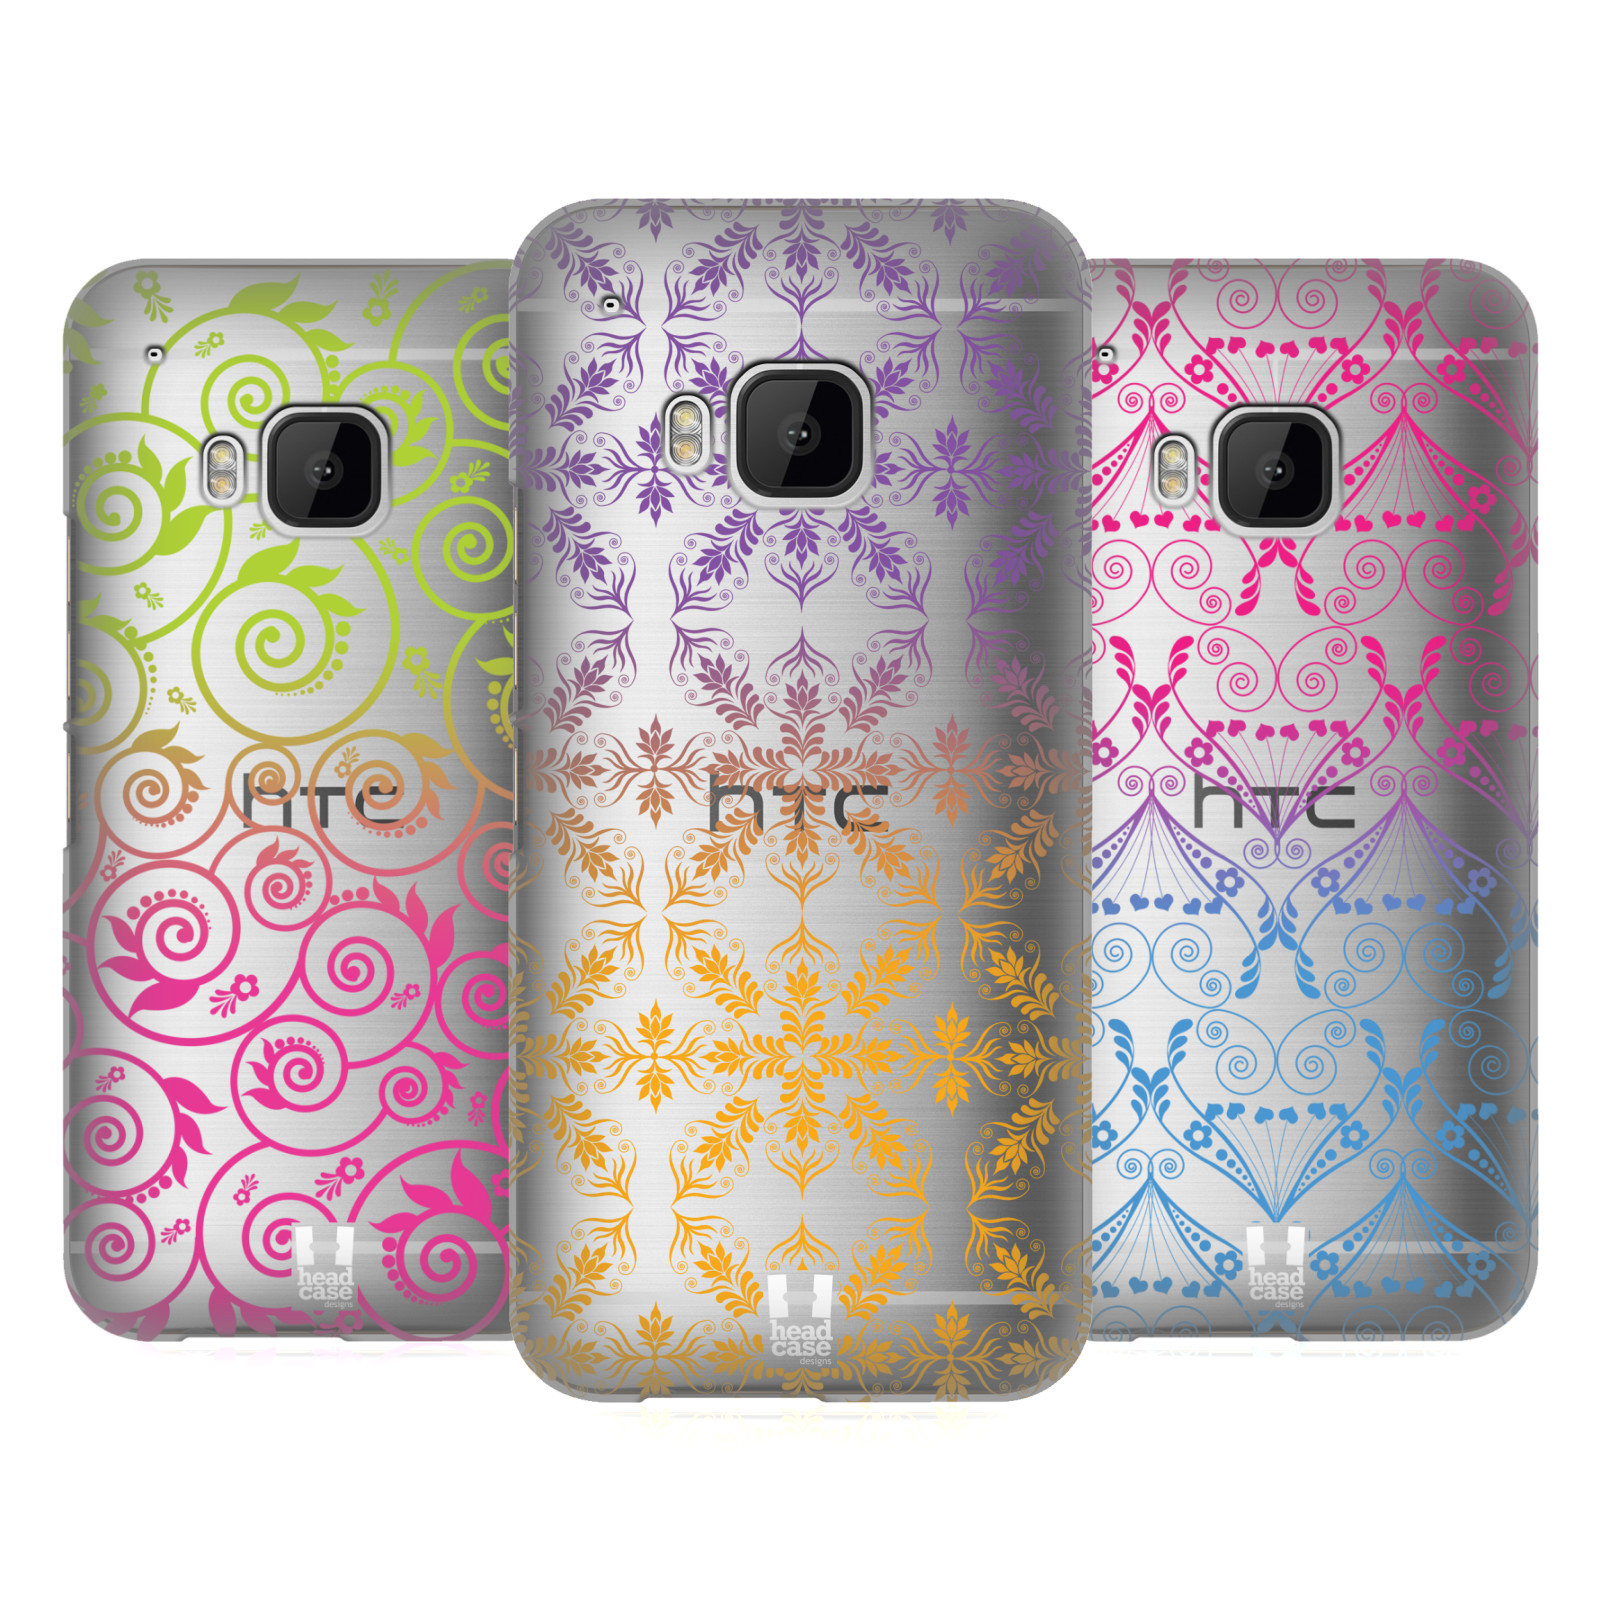 HEAD-CASE-DESIGNS-NEON-OMBRE-FILIGRAN-RUCKSEITE-HULLE-FUR-HTC-HANDYS-1